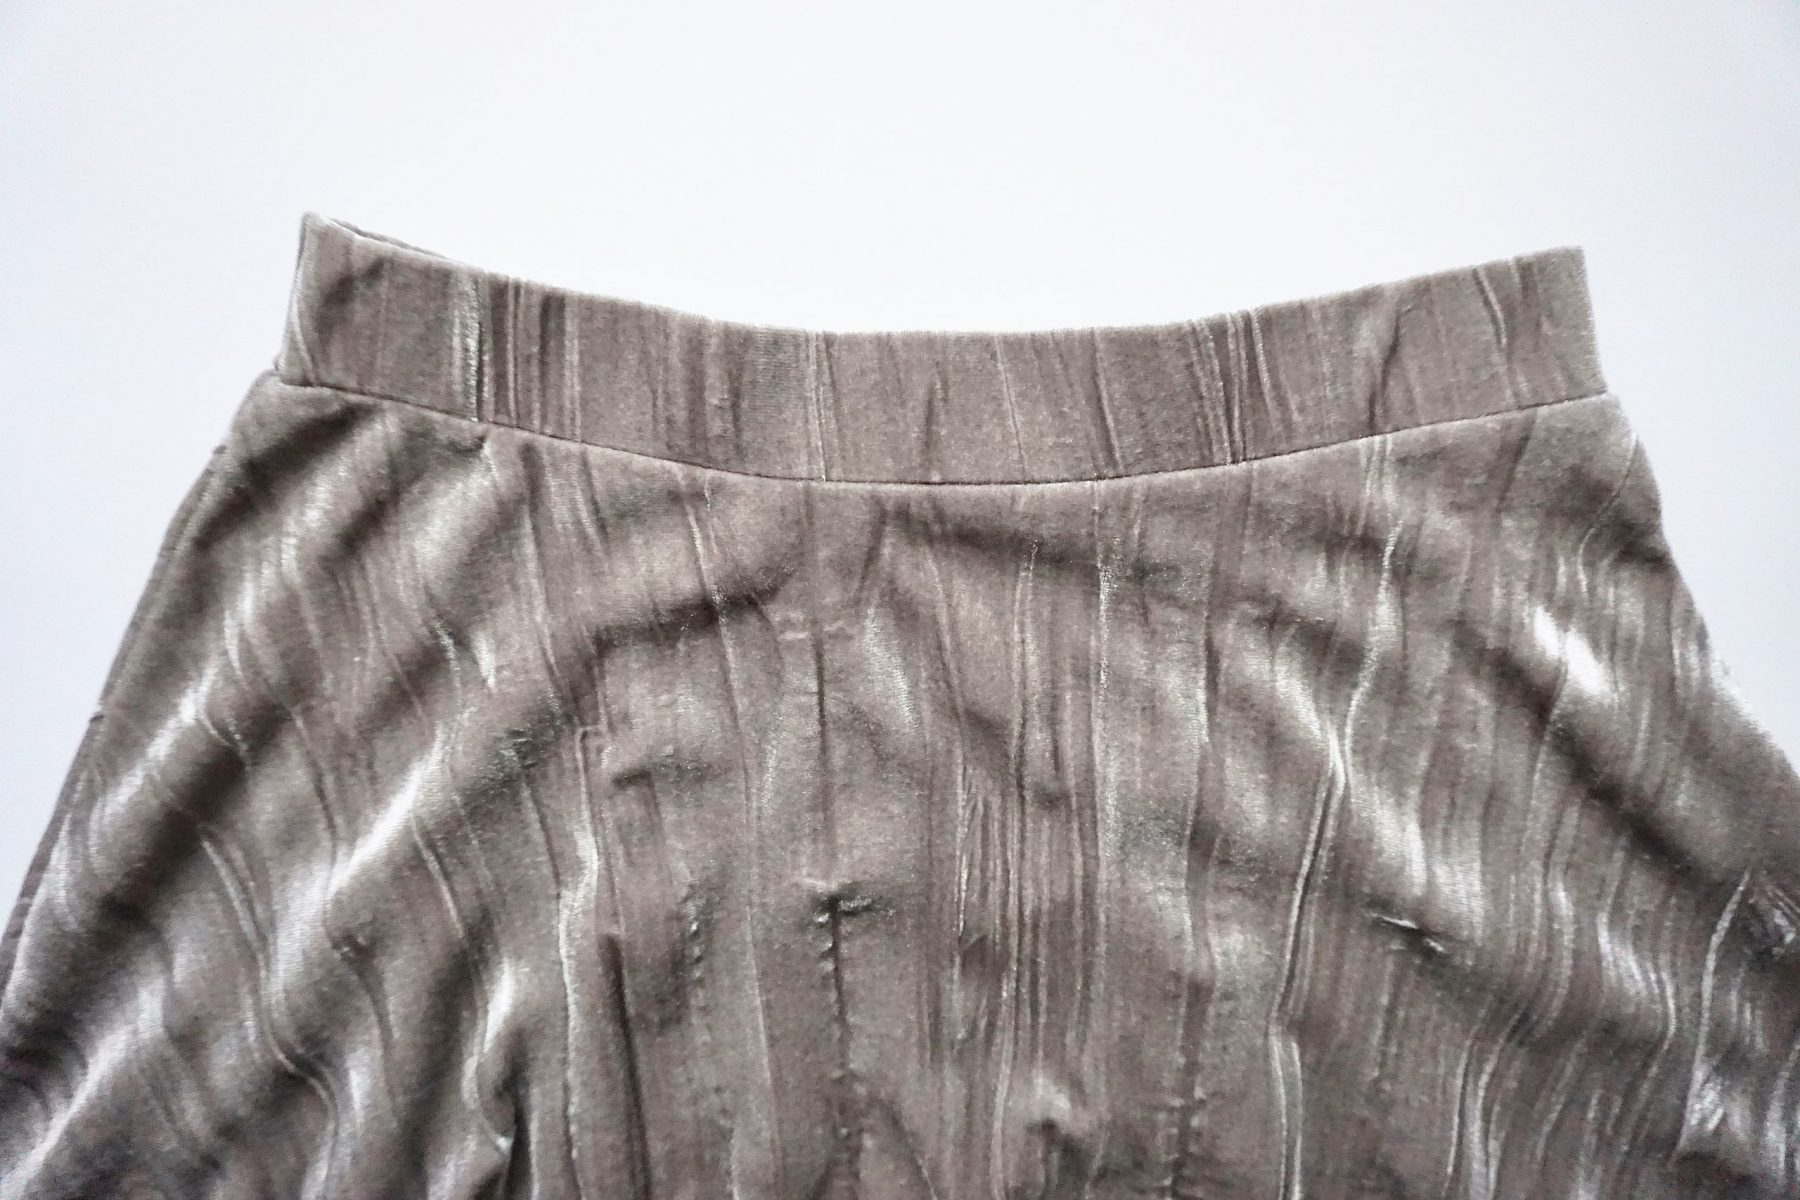 You may either hem the skirt at this point or leave it raw